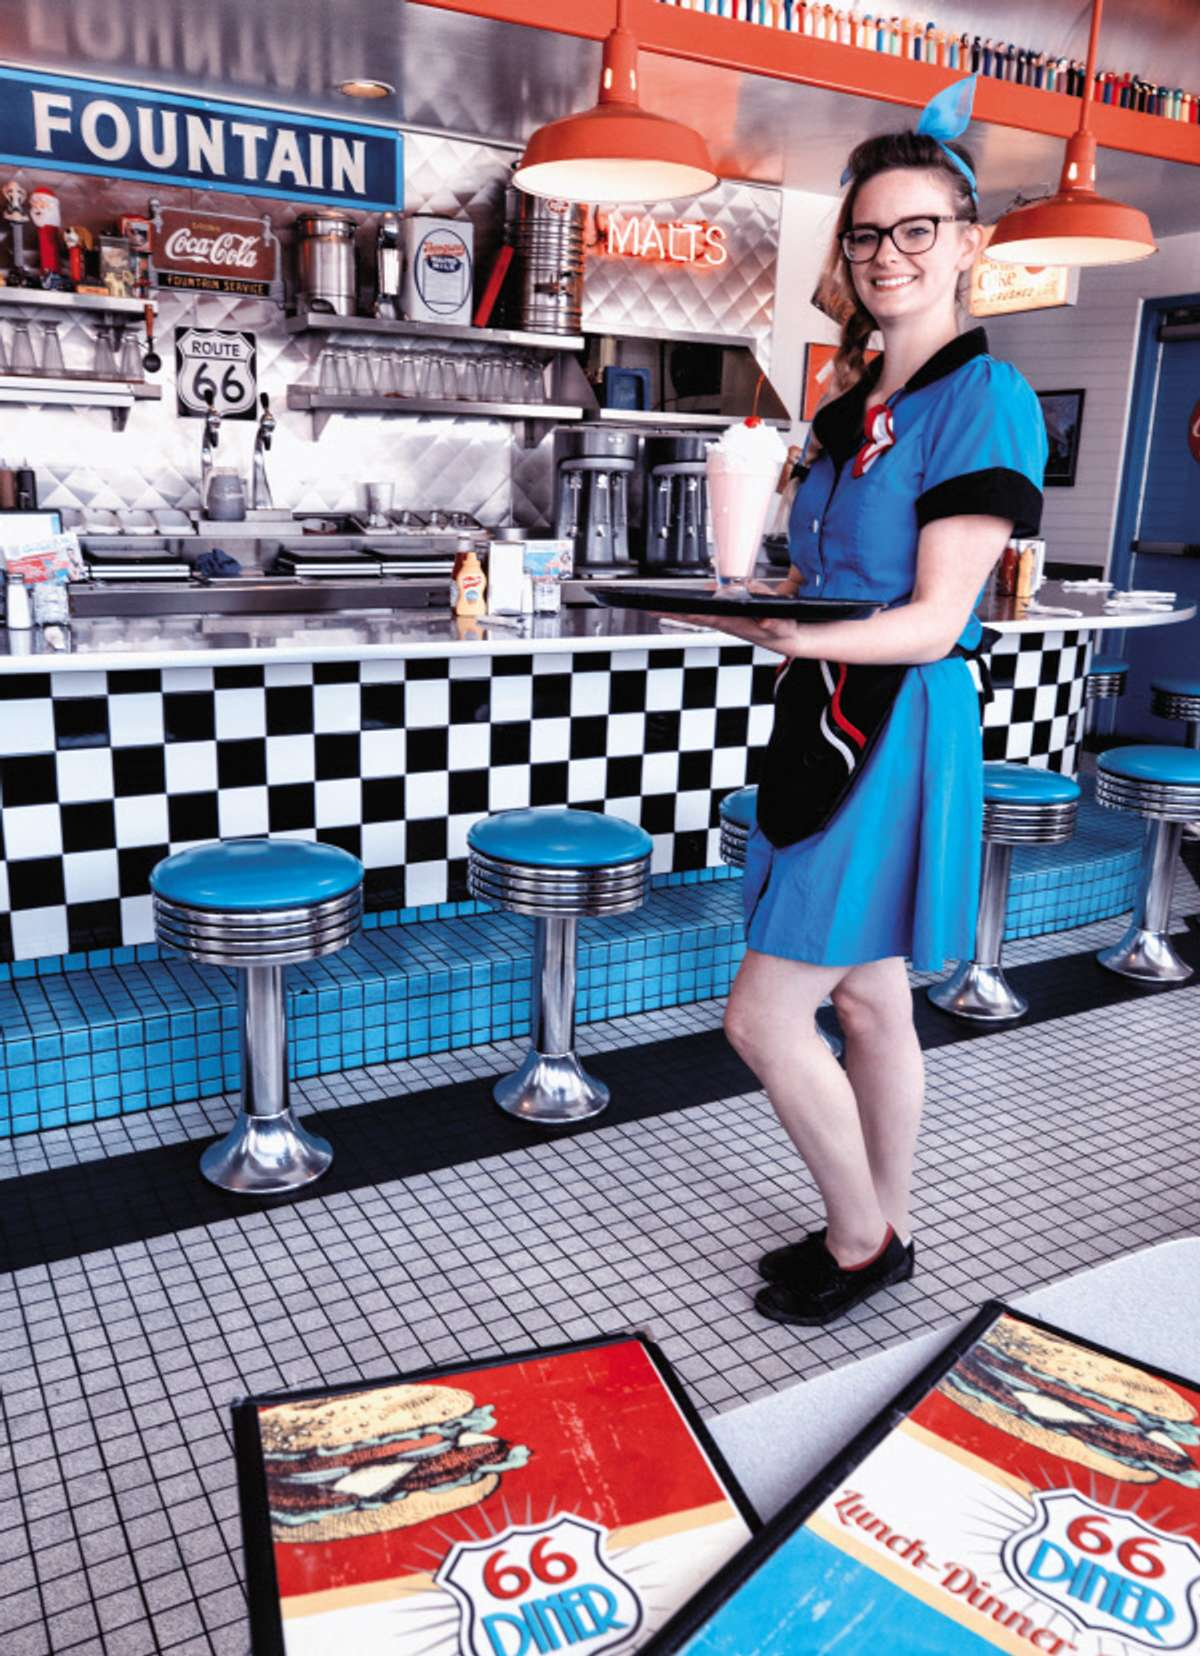 Eat at classic American diners along Route 66 (Rick Sammon)